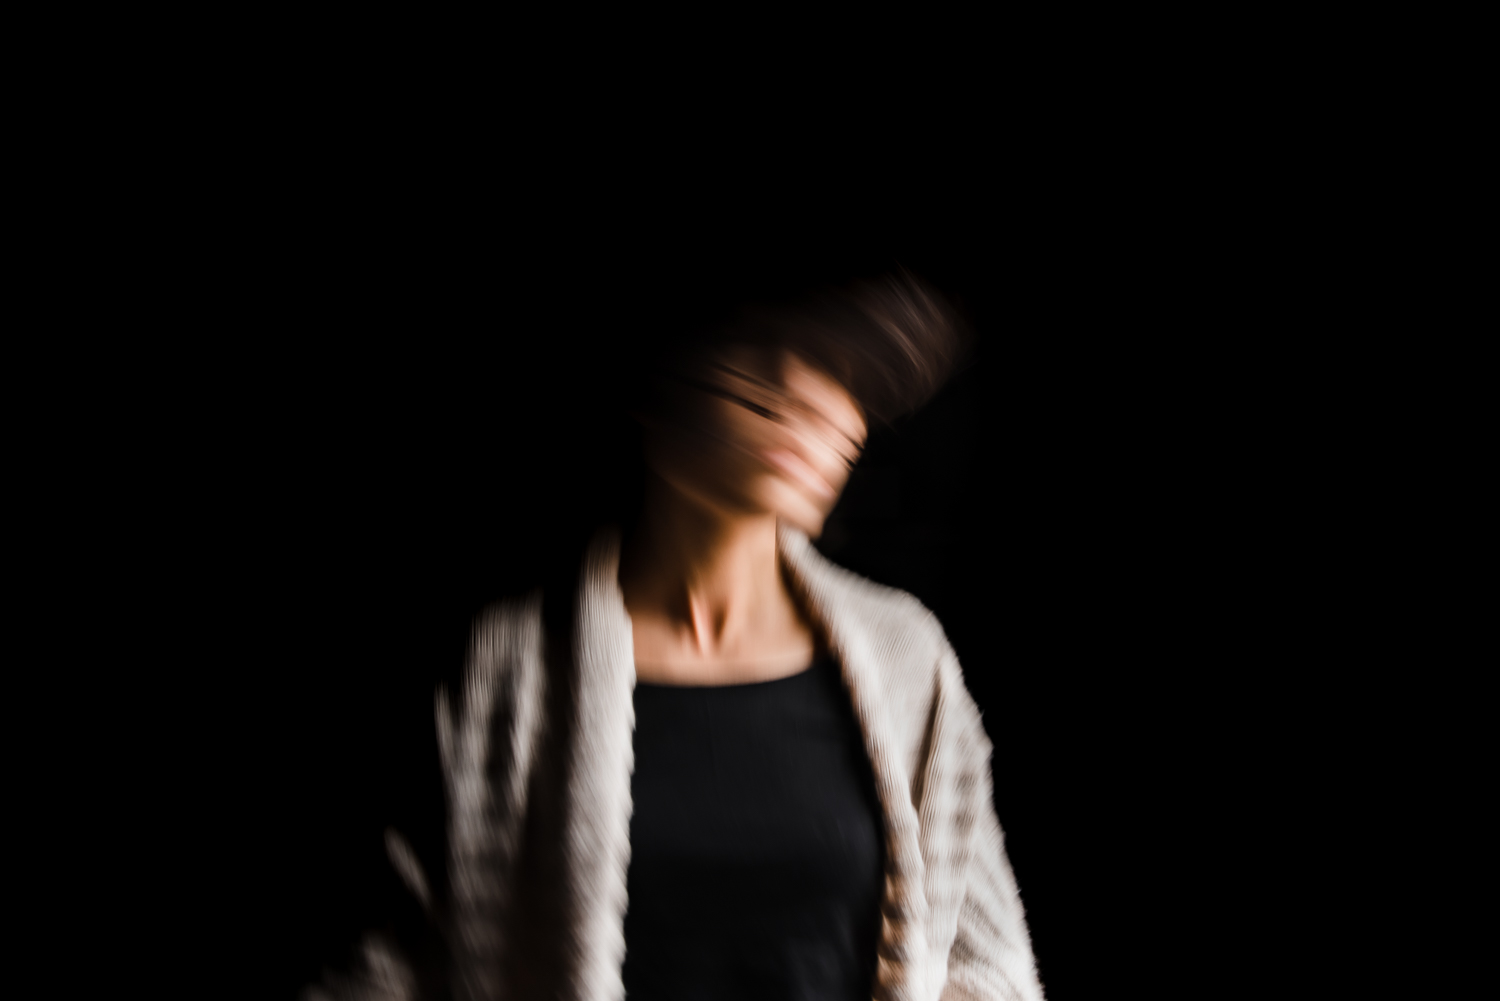 Self portrait in motion by Diana Hagues